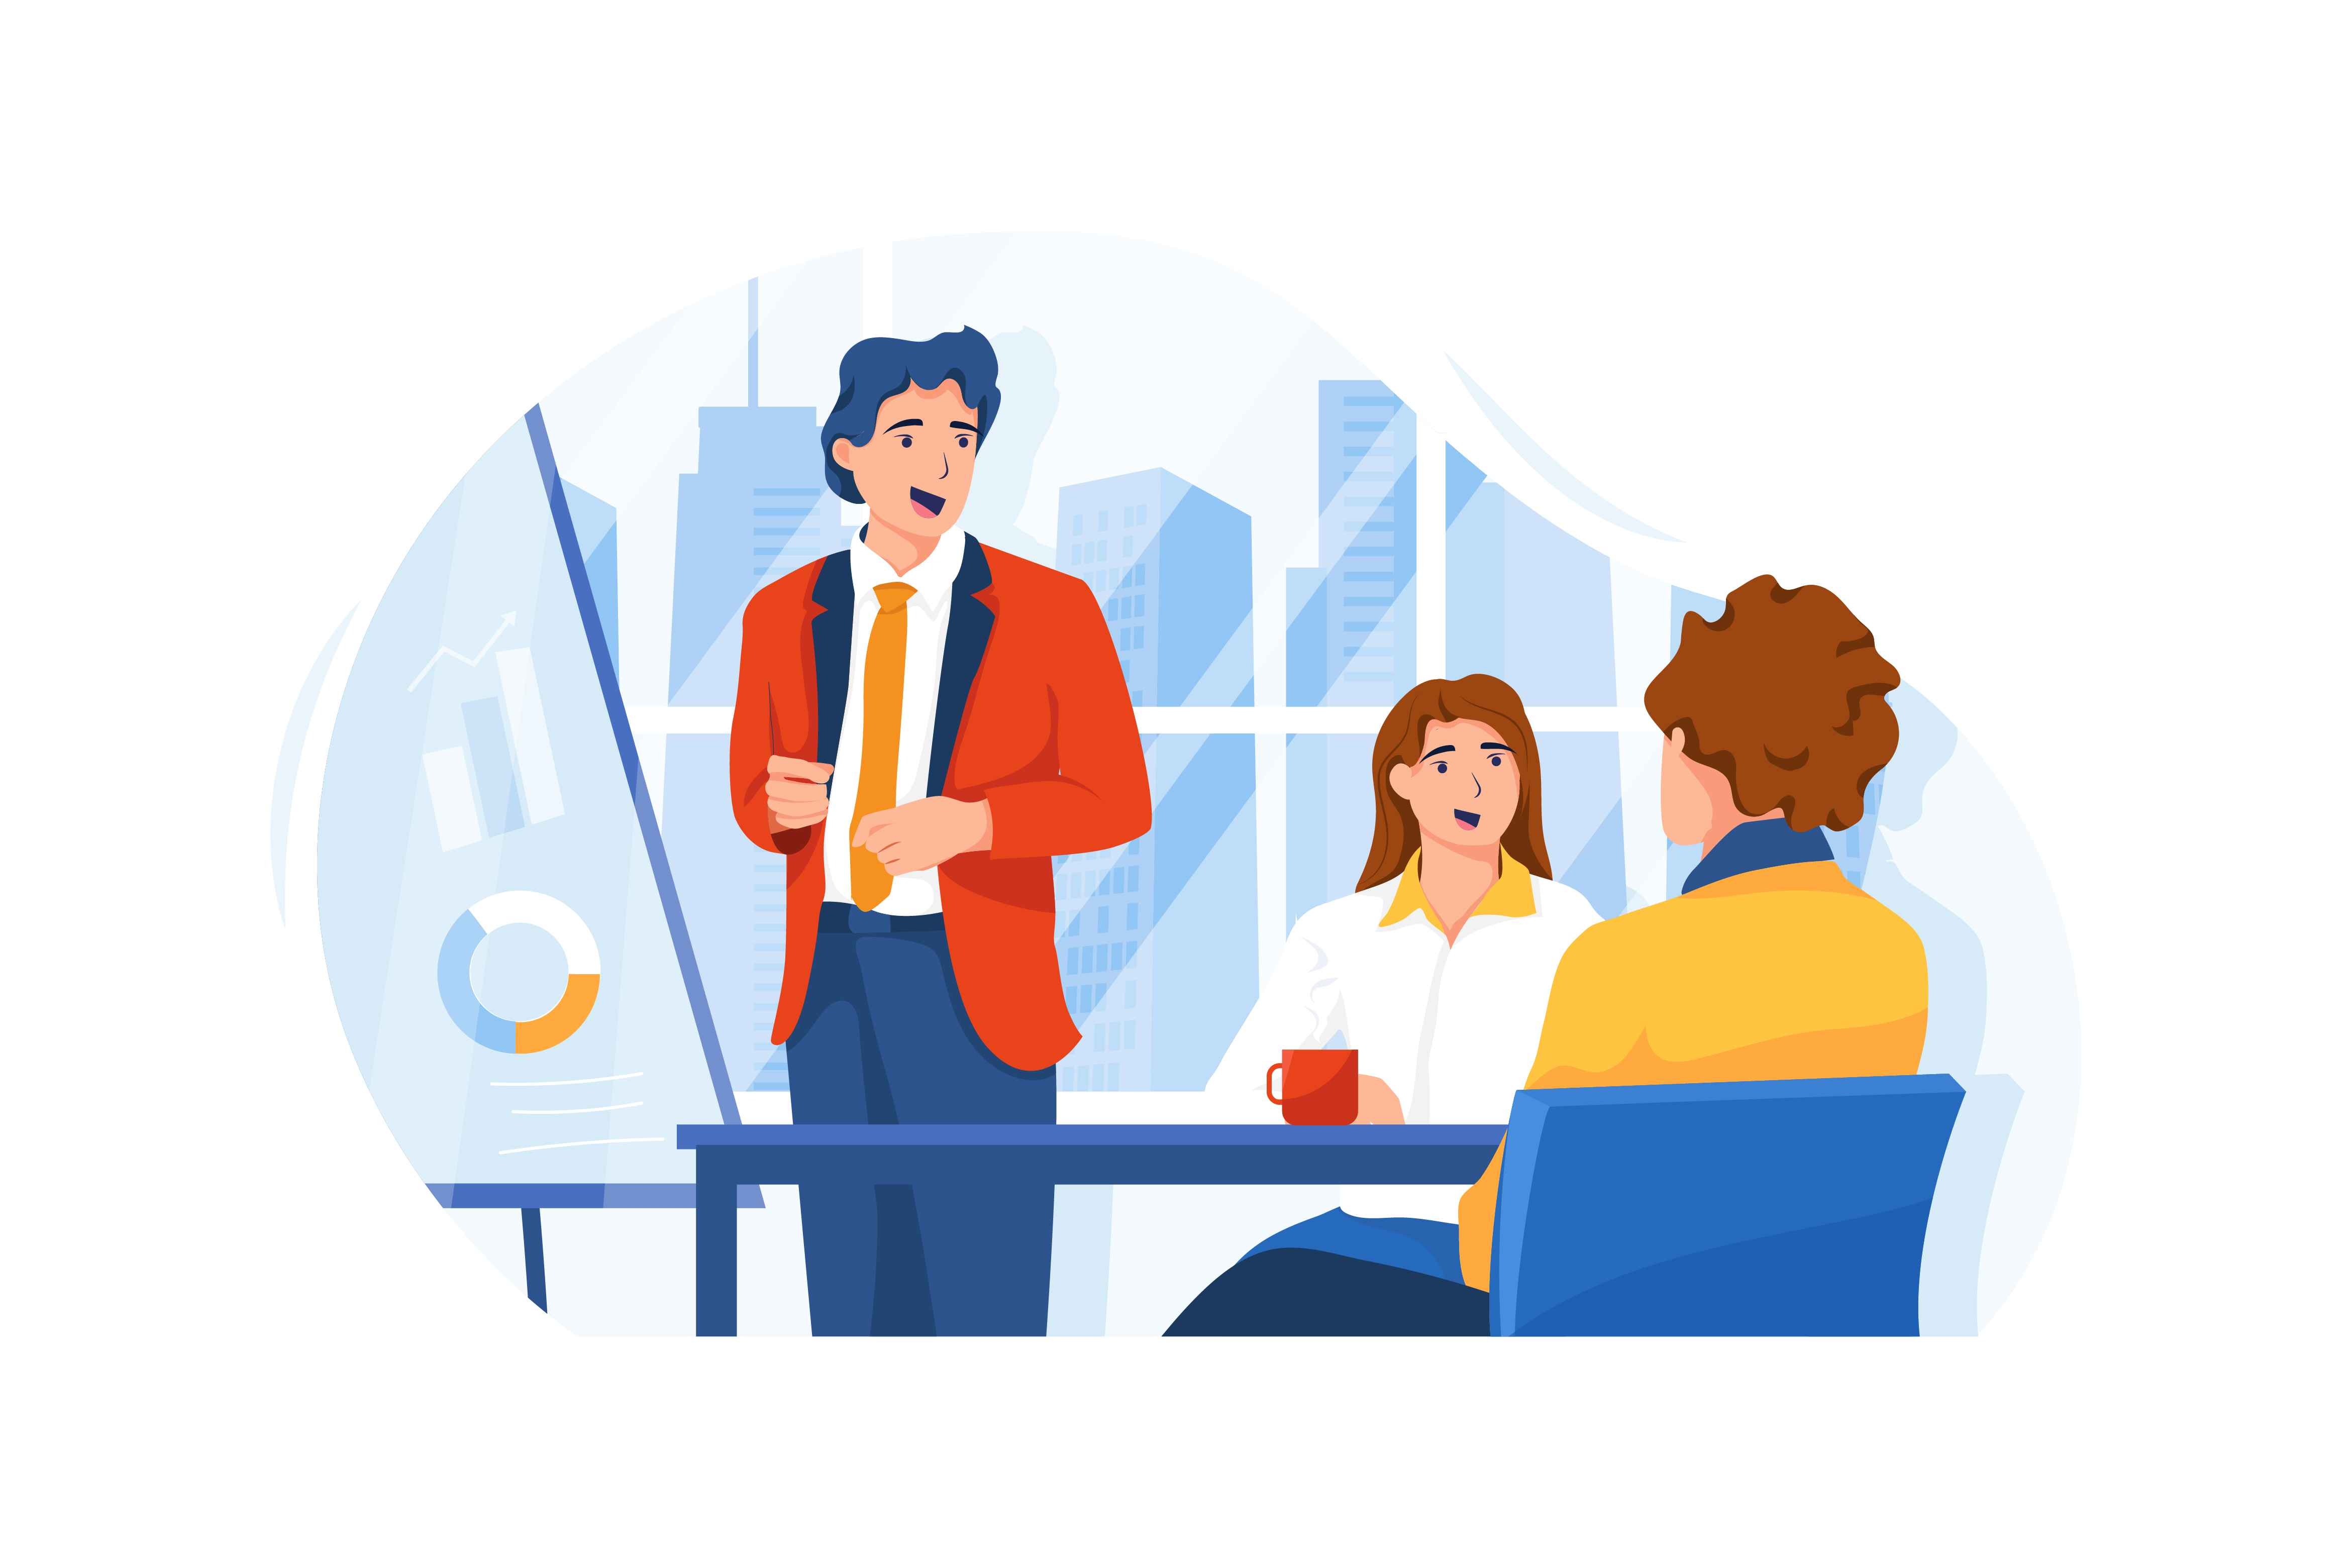 Business Meeting - article Videos for Investors Pitching